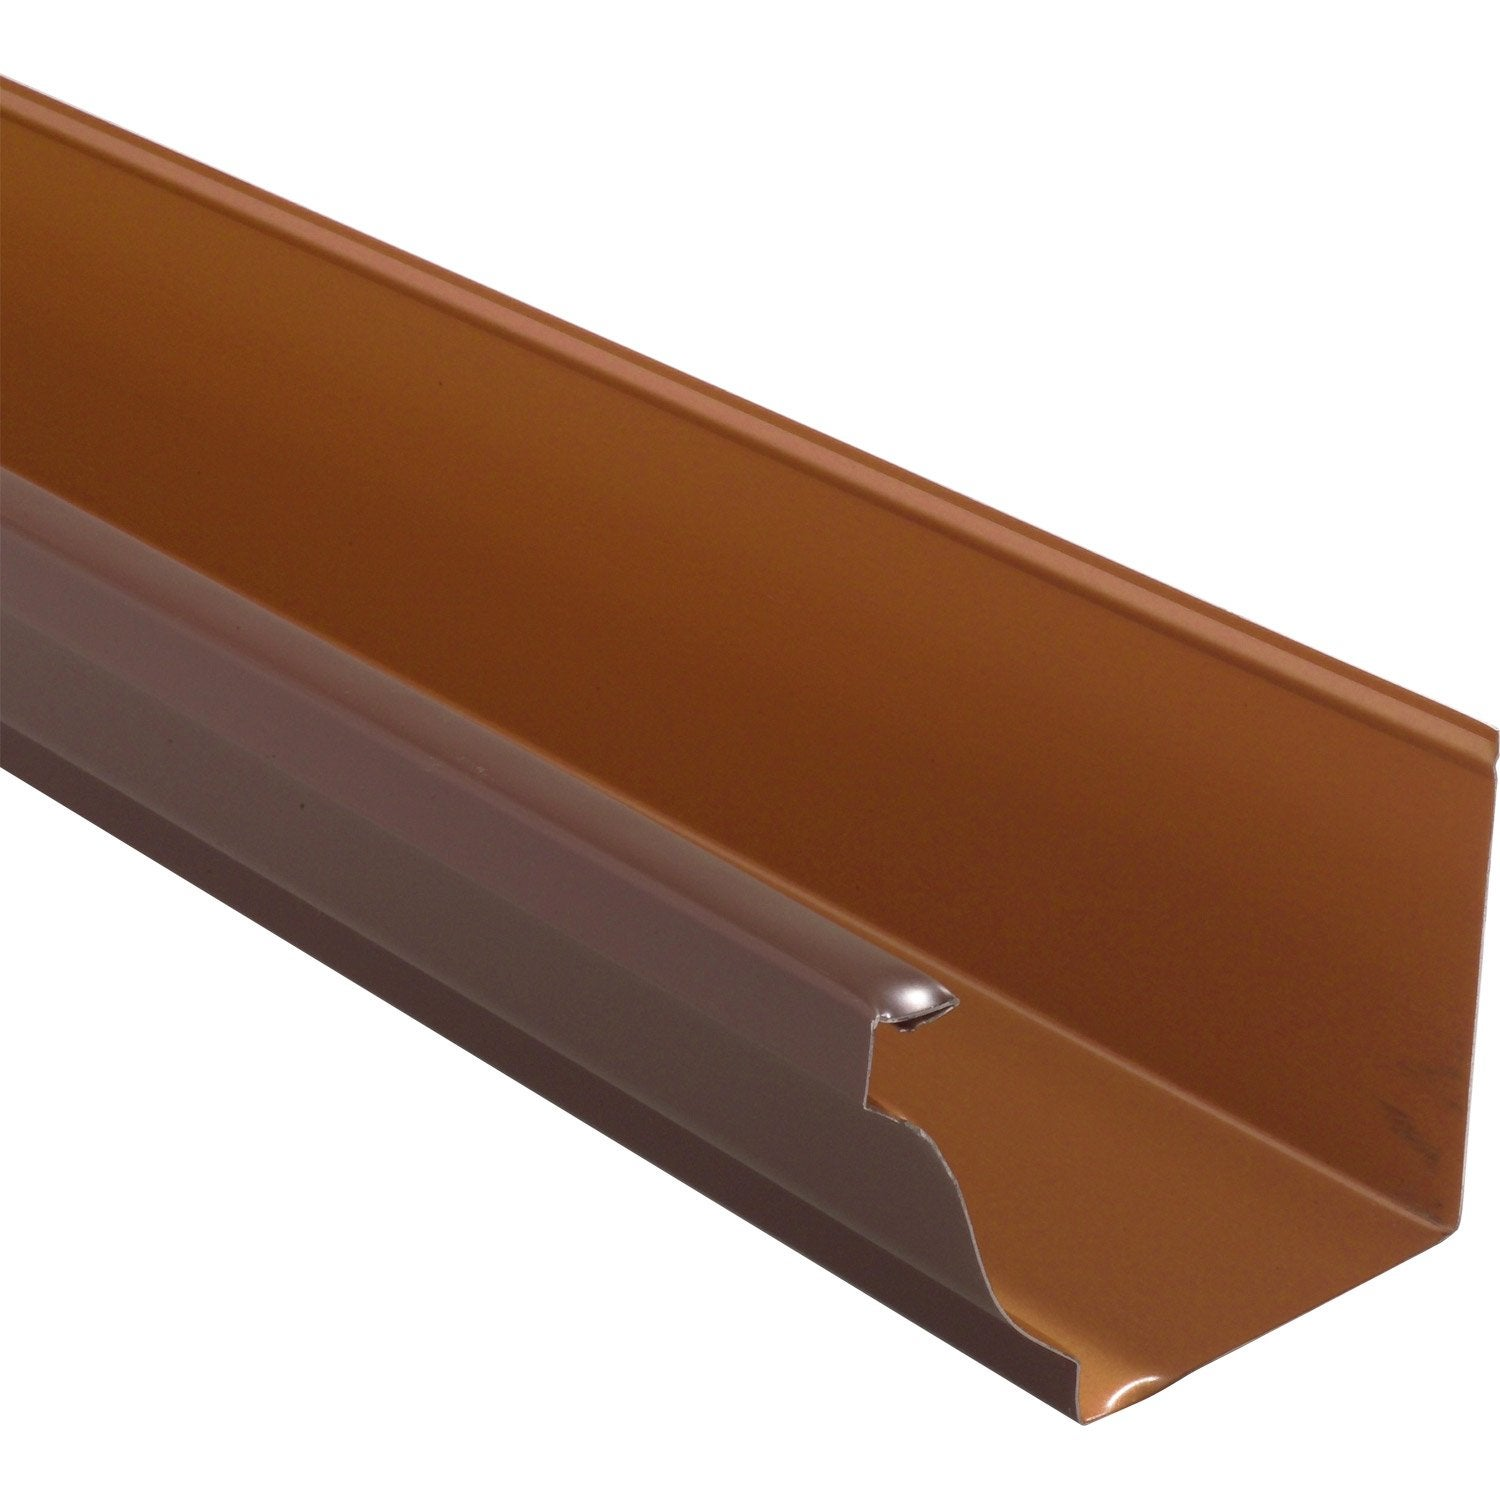 Goutti re aluminium scover plus d cm marron l 2 m for Tube rectangulaire alu leroy merlin